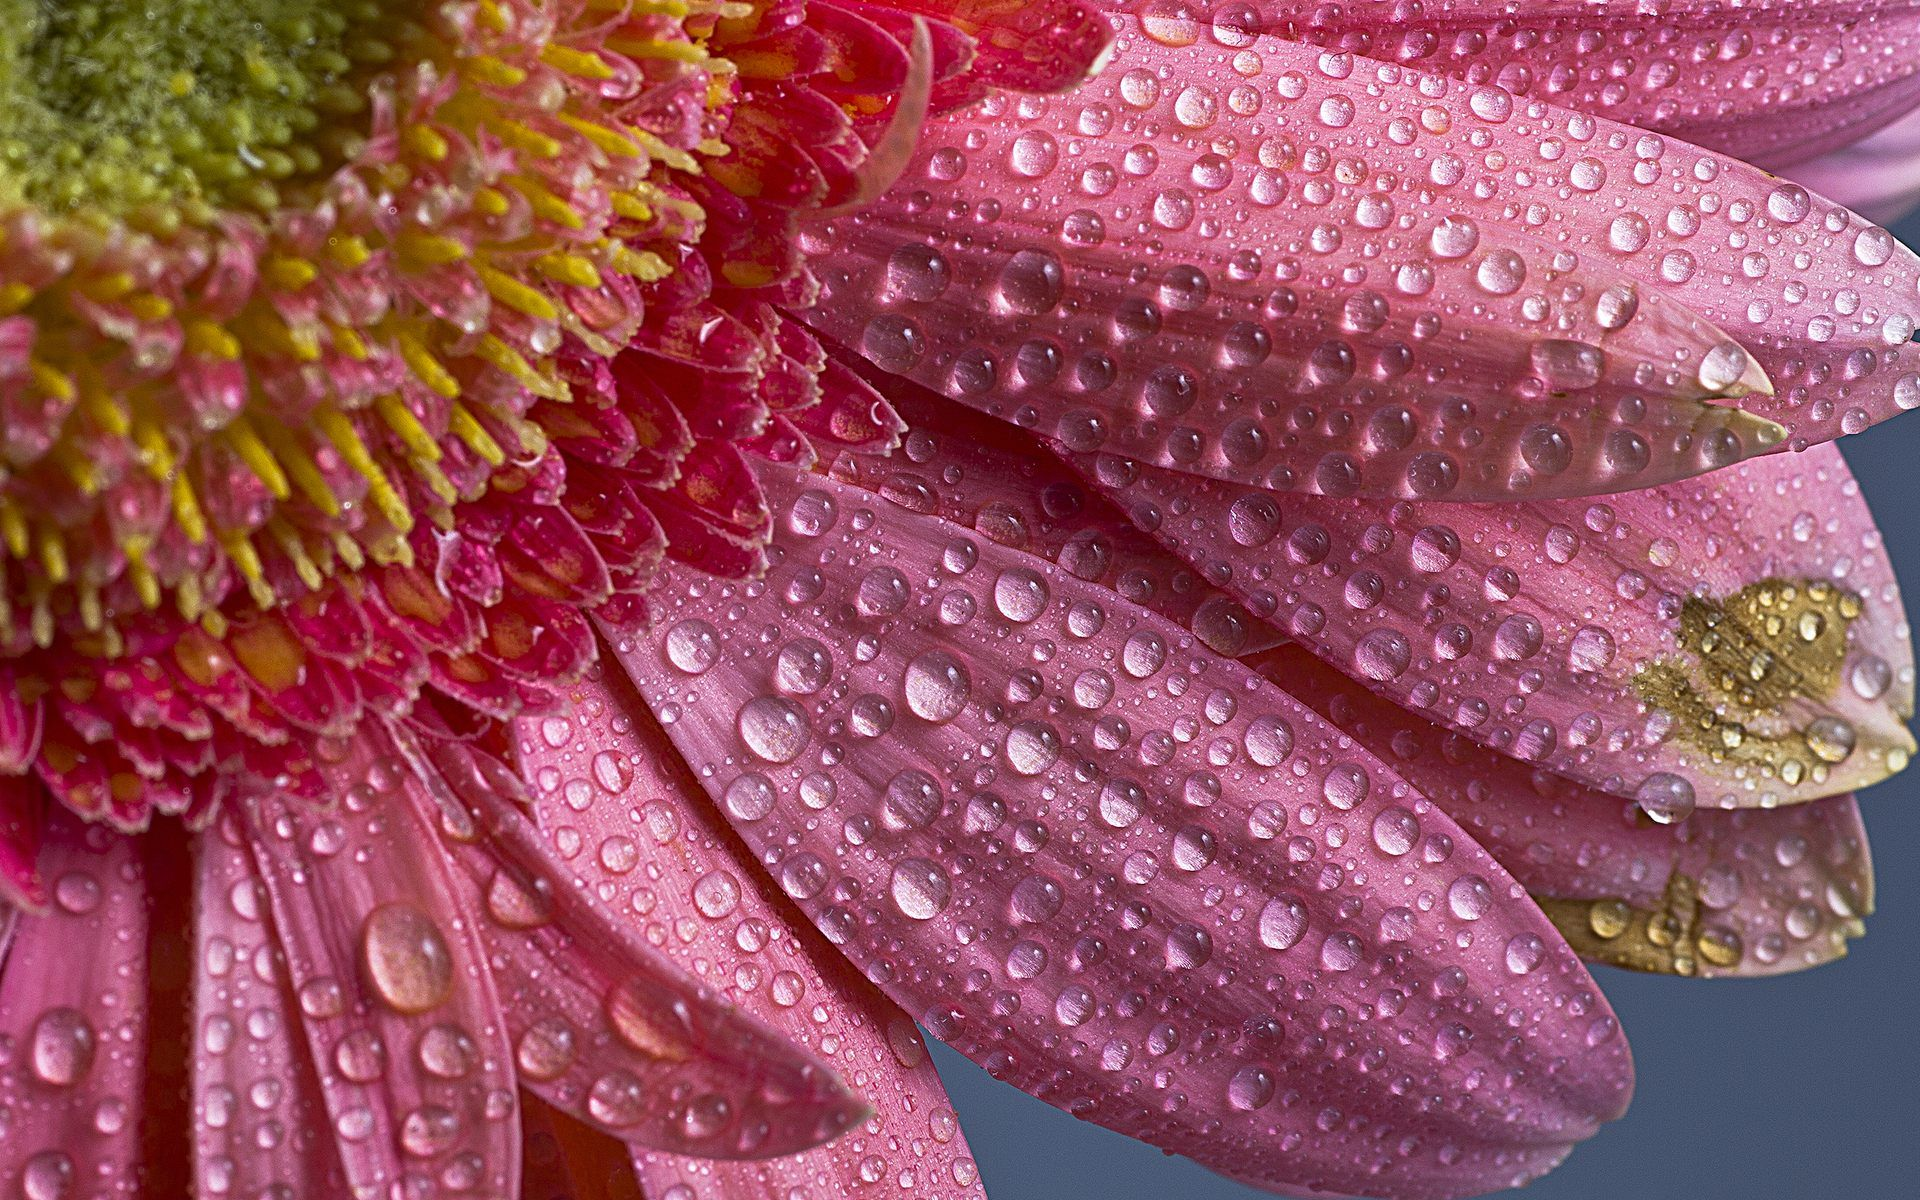 Rose water drops blue colour pictures beautiful flower rose art